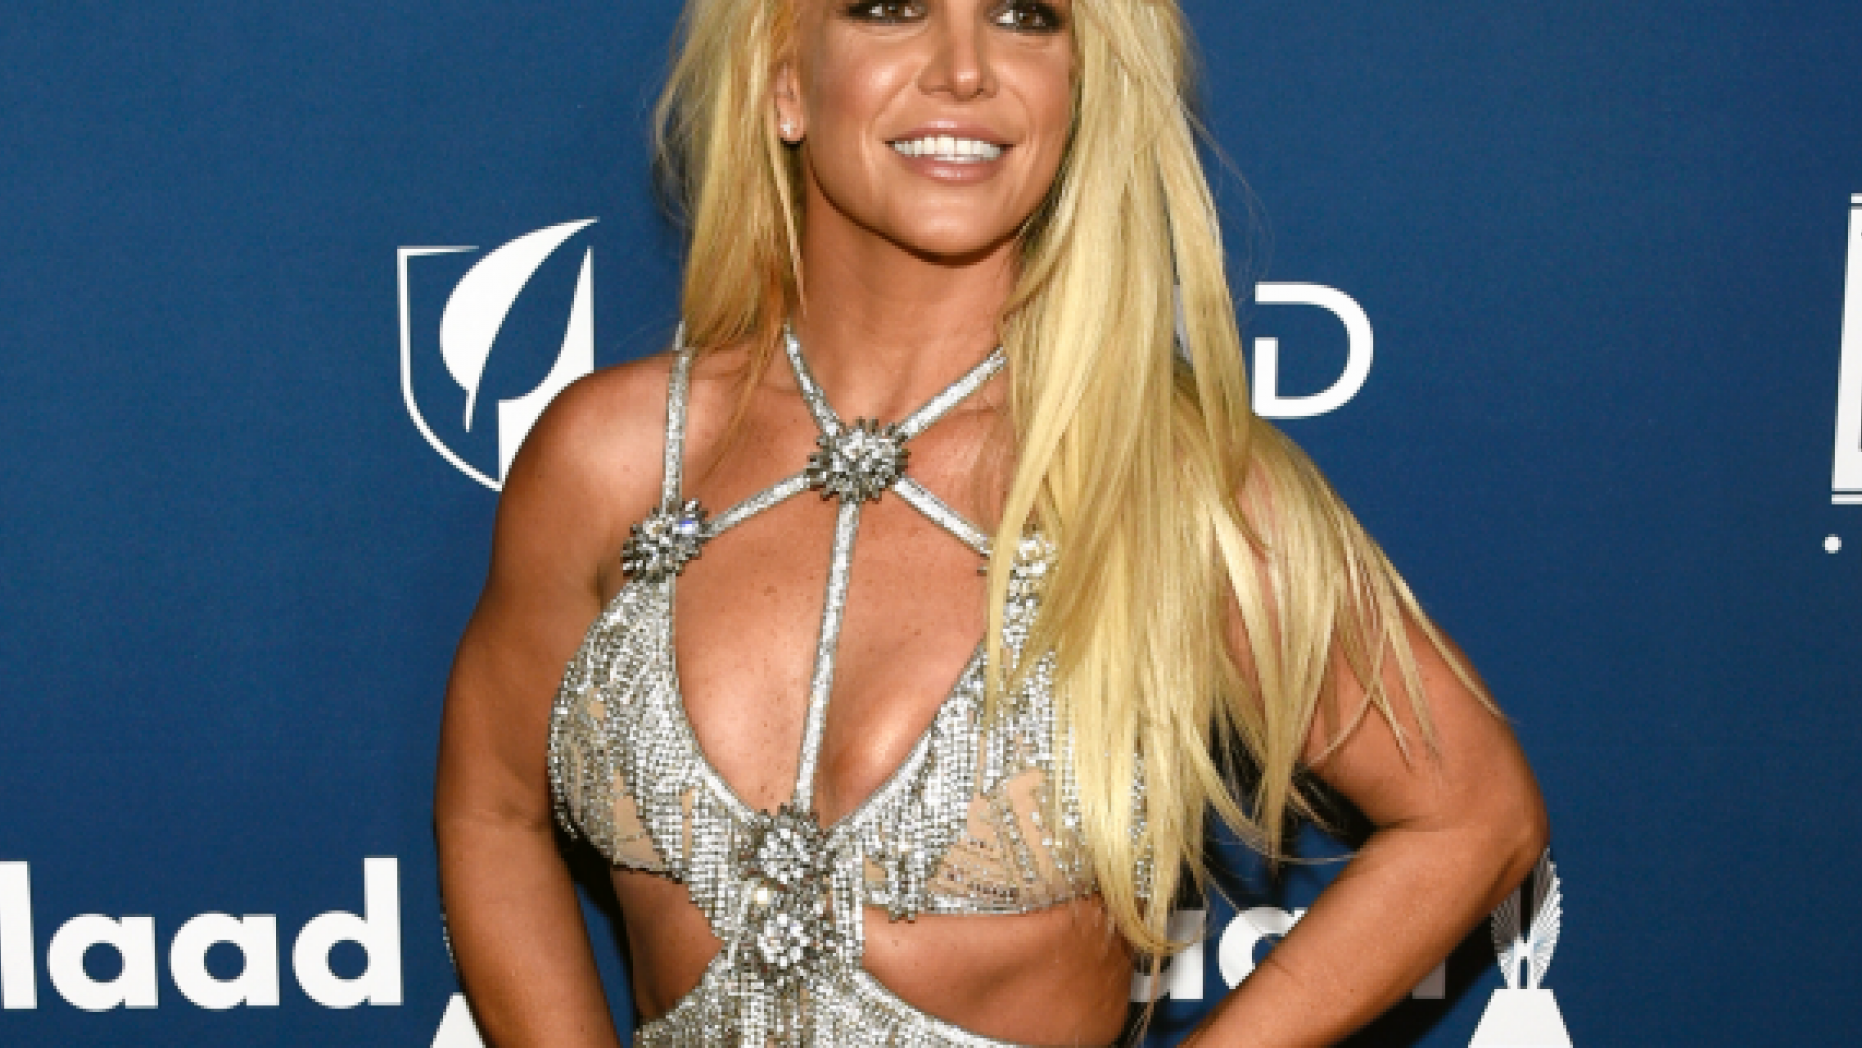 FILE - In this April 12, 2018 file photo, Britney Spears arrives at the 29th annual GLAAD Media Awards in Beverly Hills, Calif. (Photo by Chris Pizzello/Invision/AP, File)